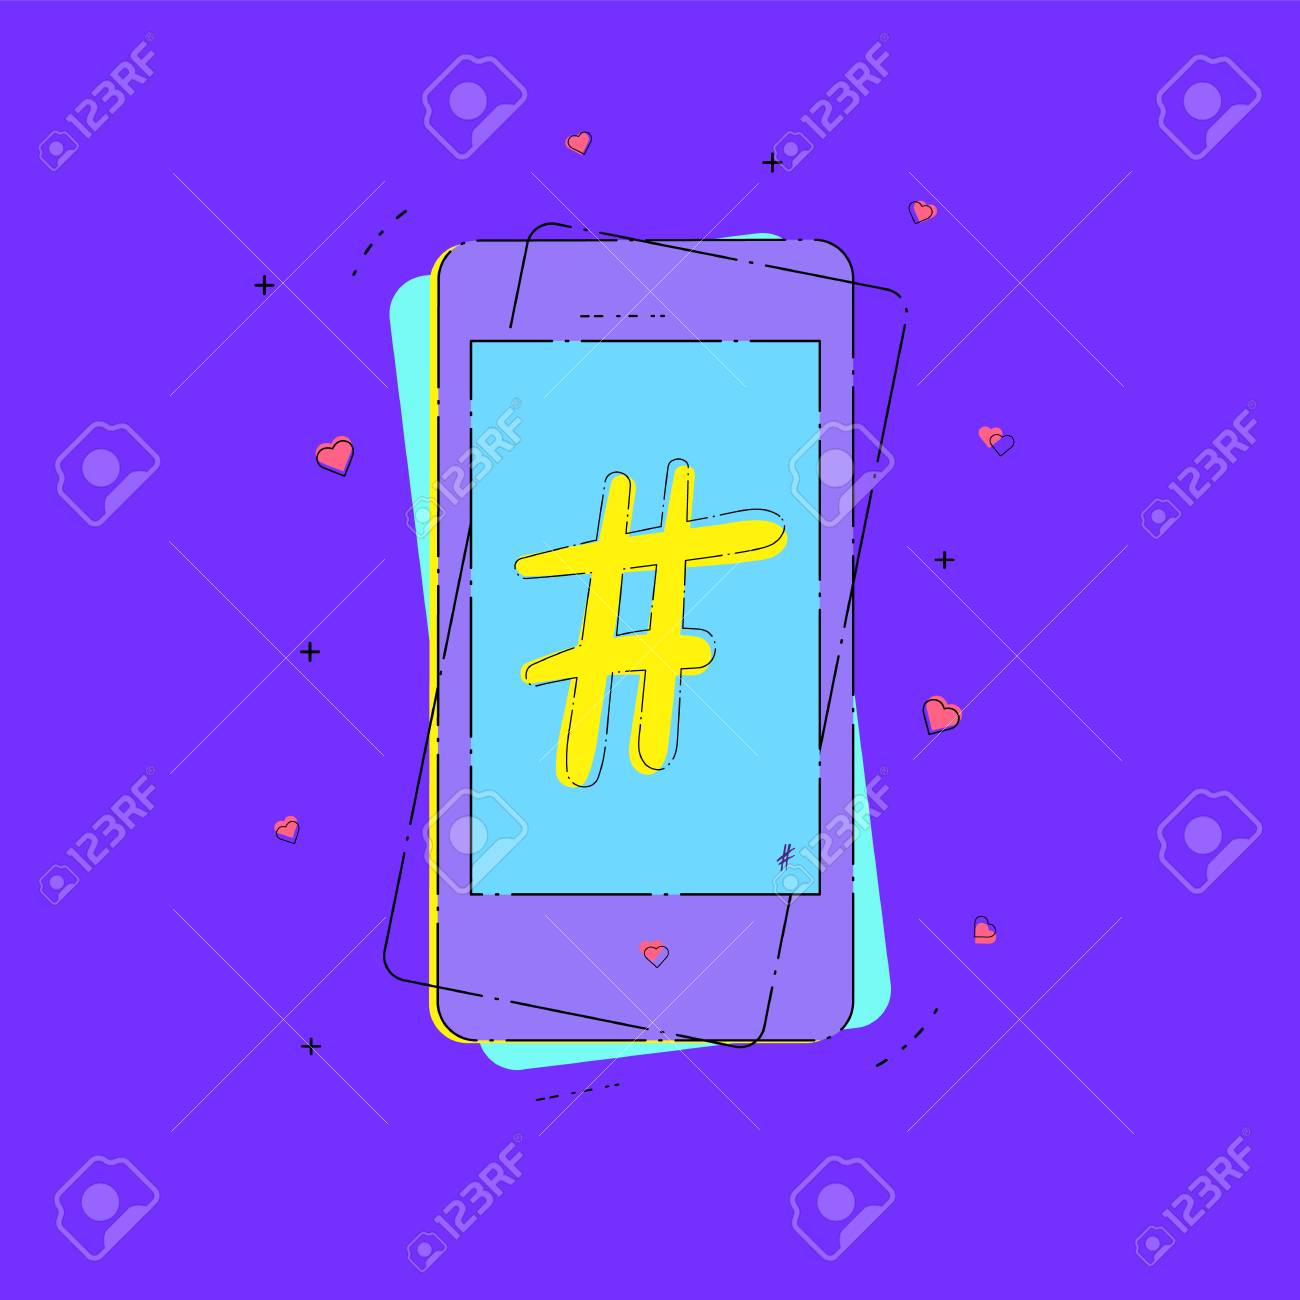 Hashtag Sign With Phone Number Symbol Glitch Chromatic Aberration